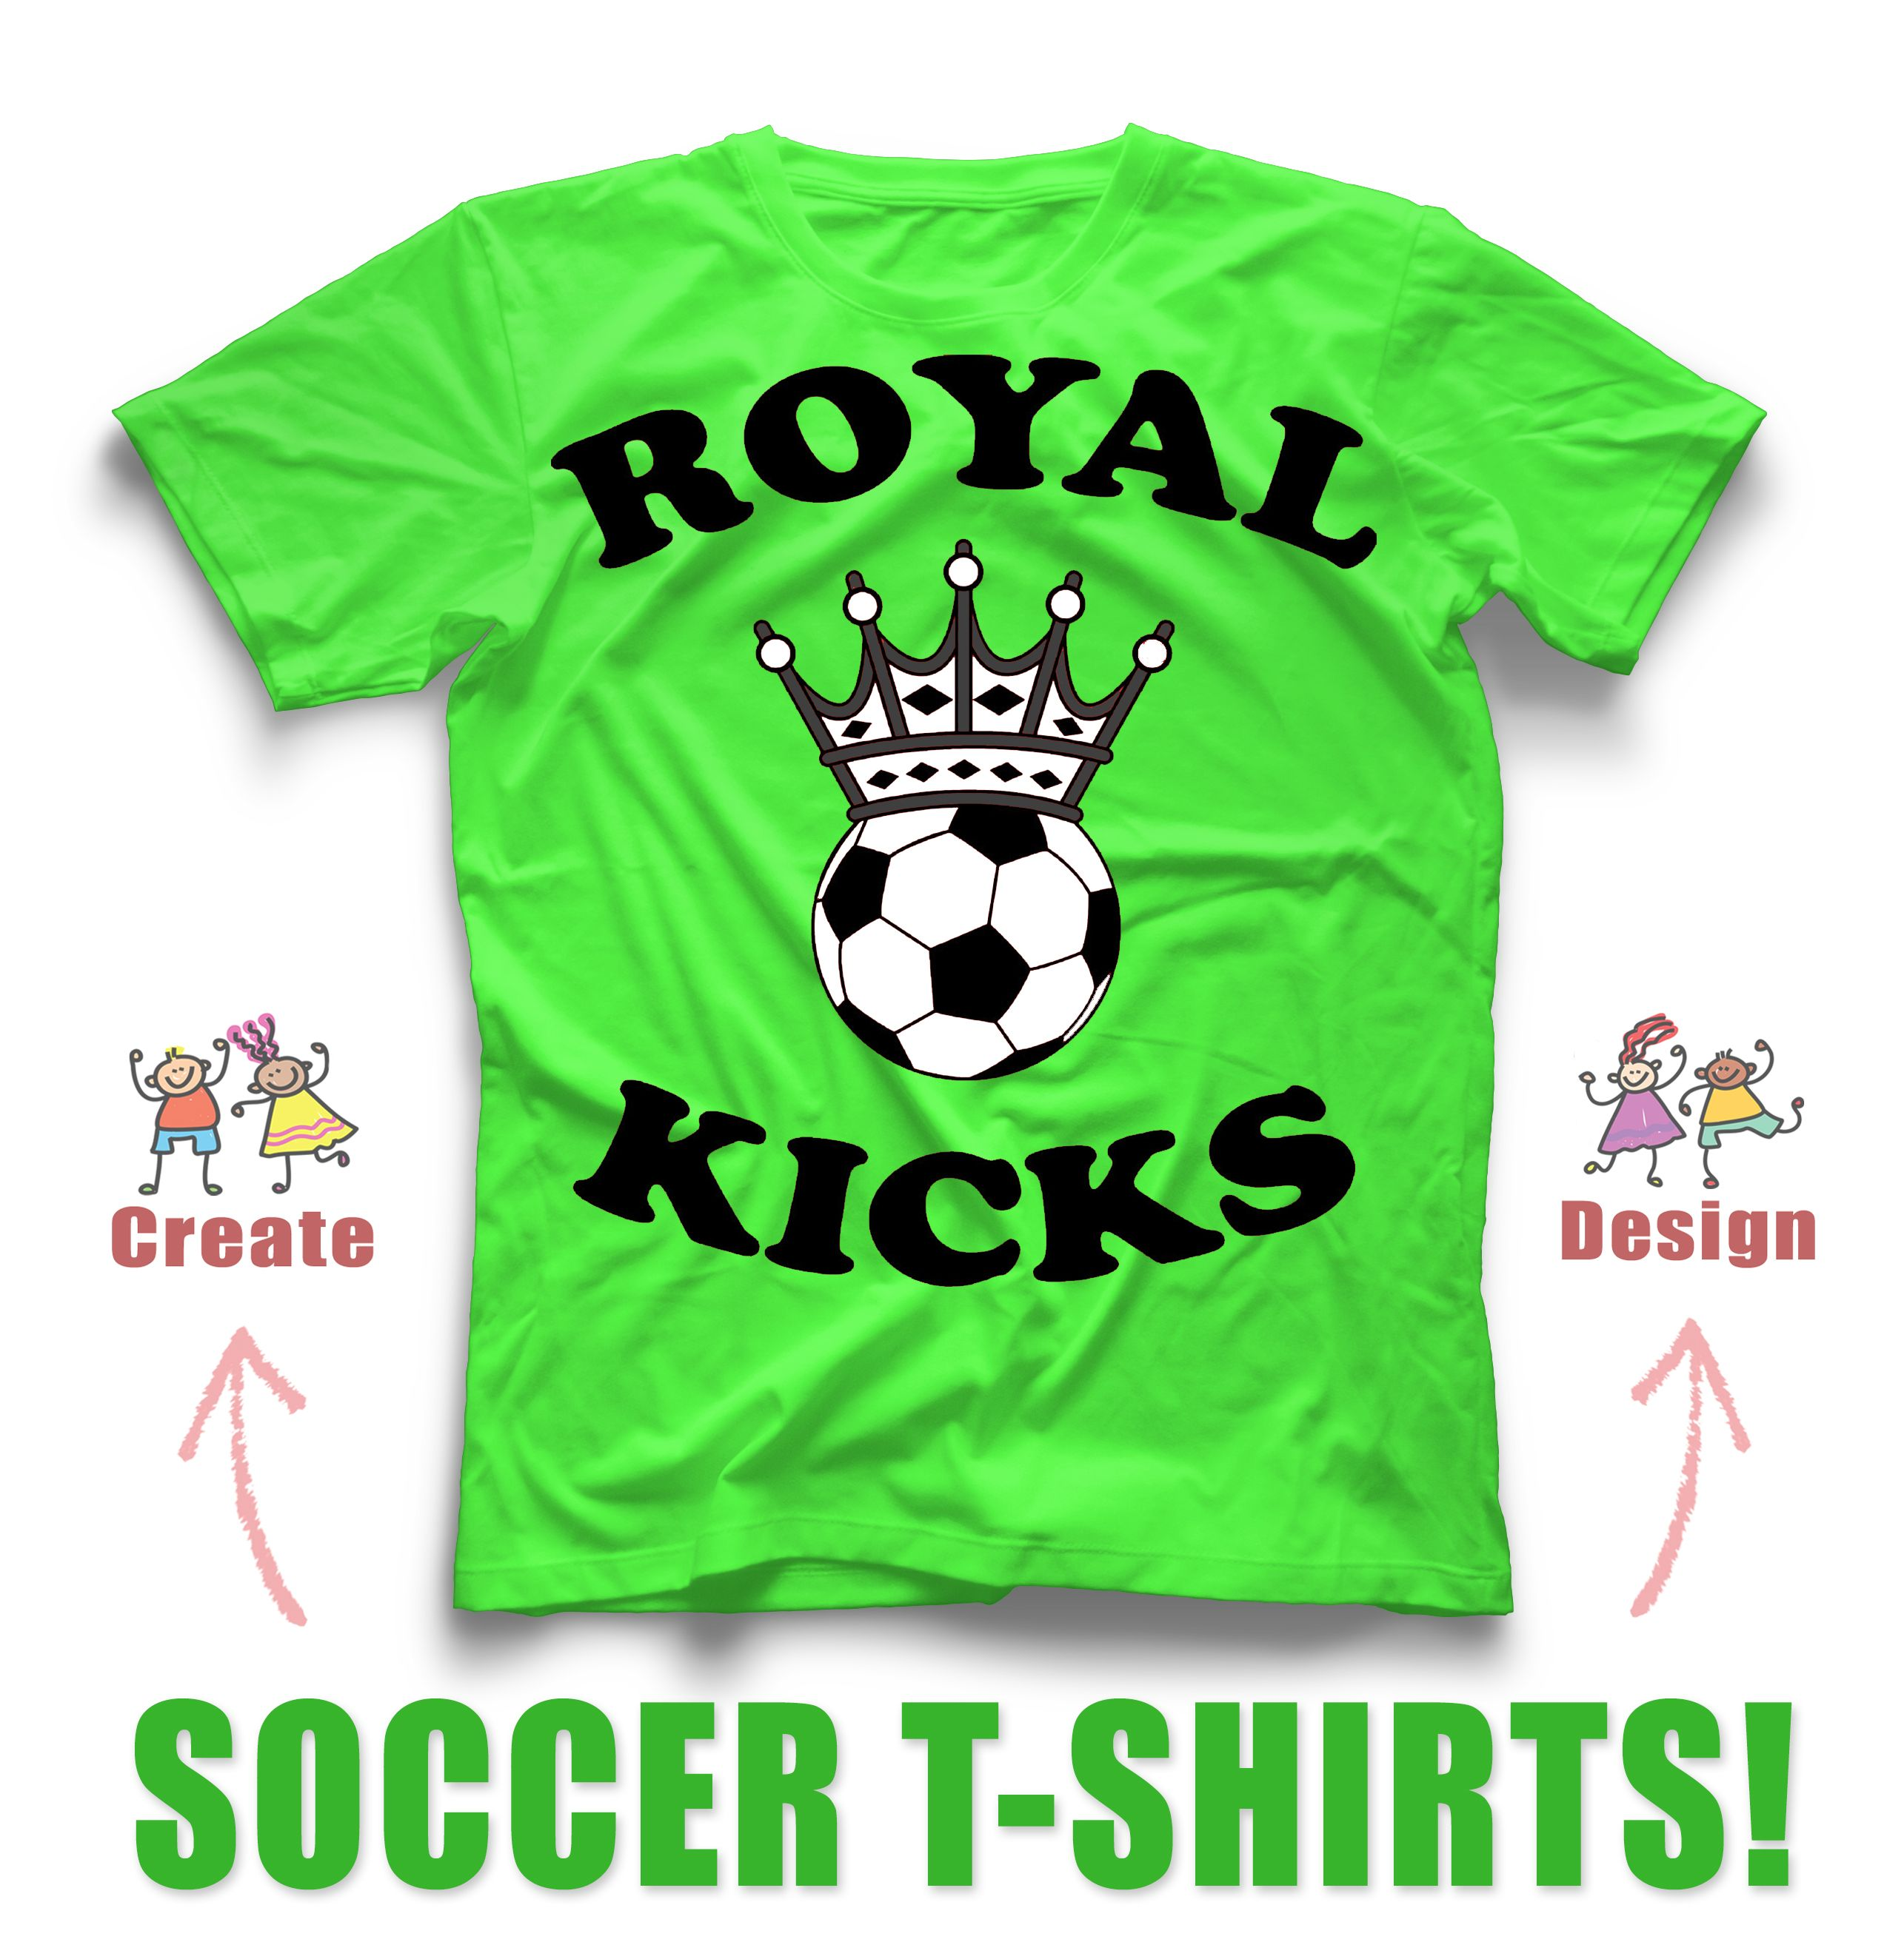 soccer custom shirt design idea for your team design and create online with our online - Soccer T Shirt Design Ideas